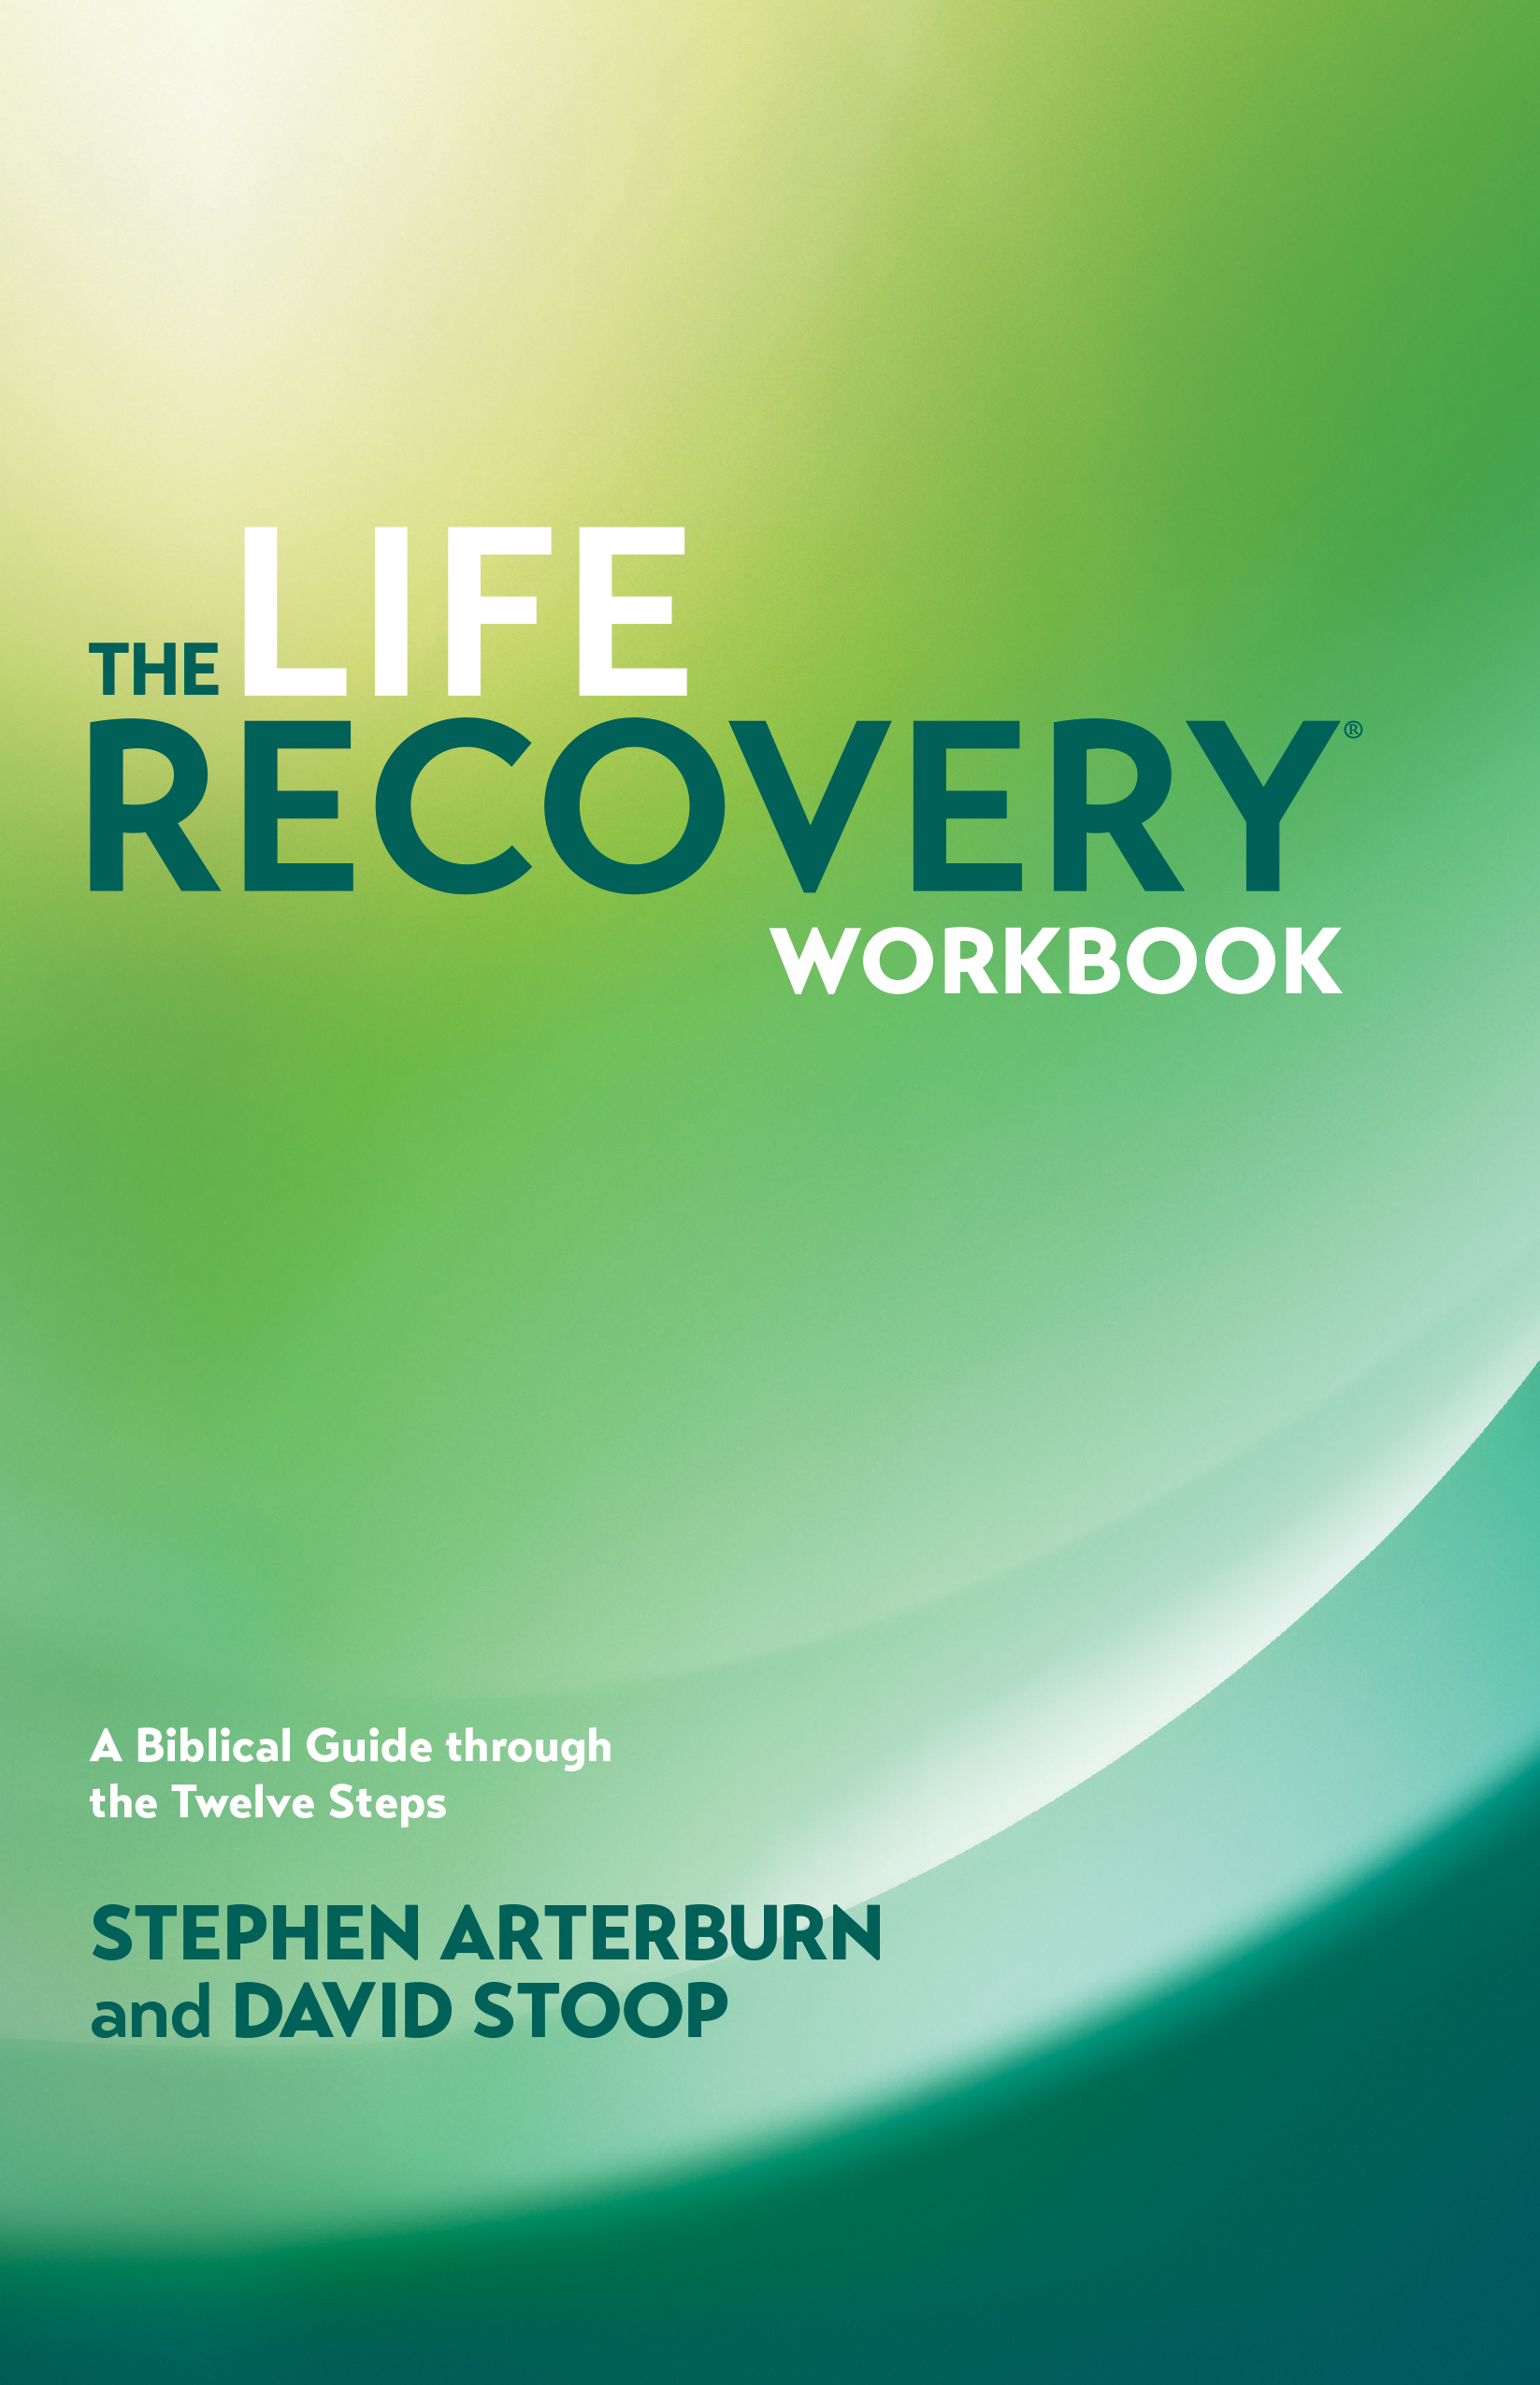 life recovery workbook book cover